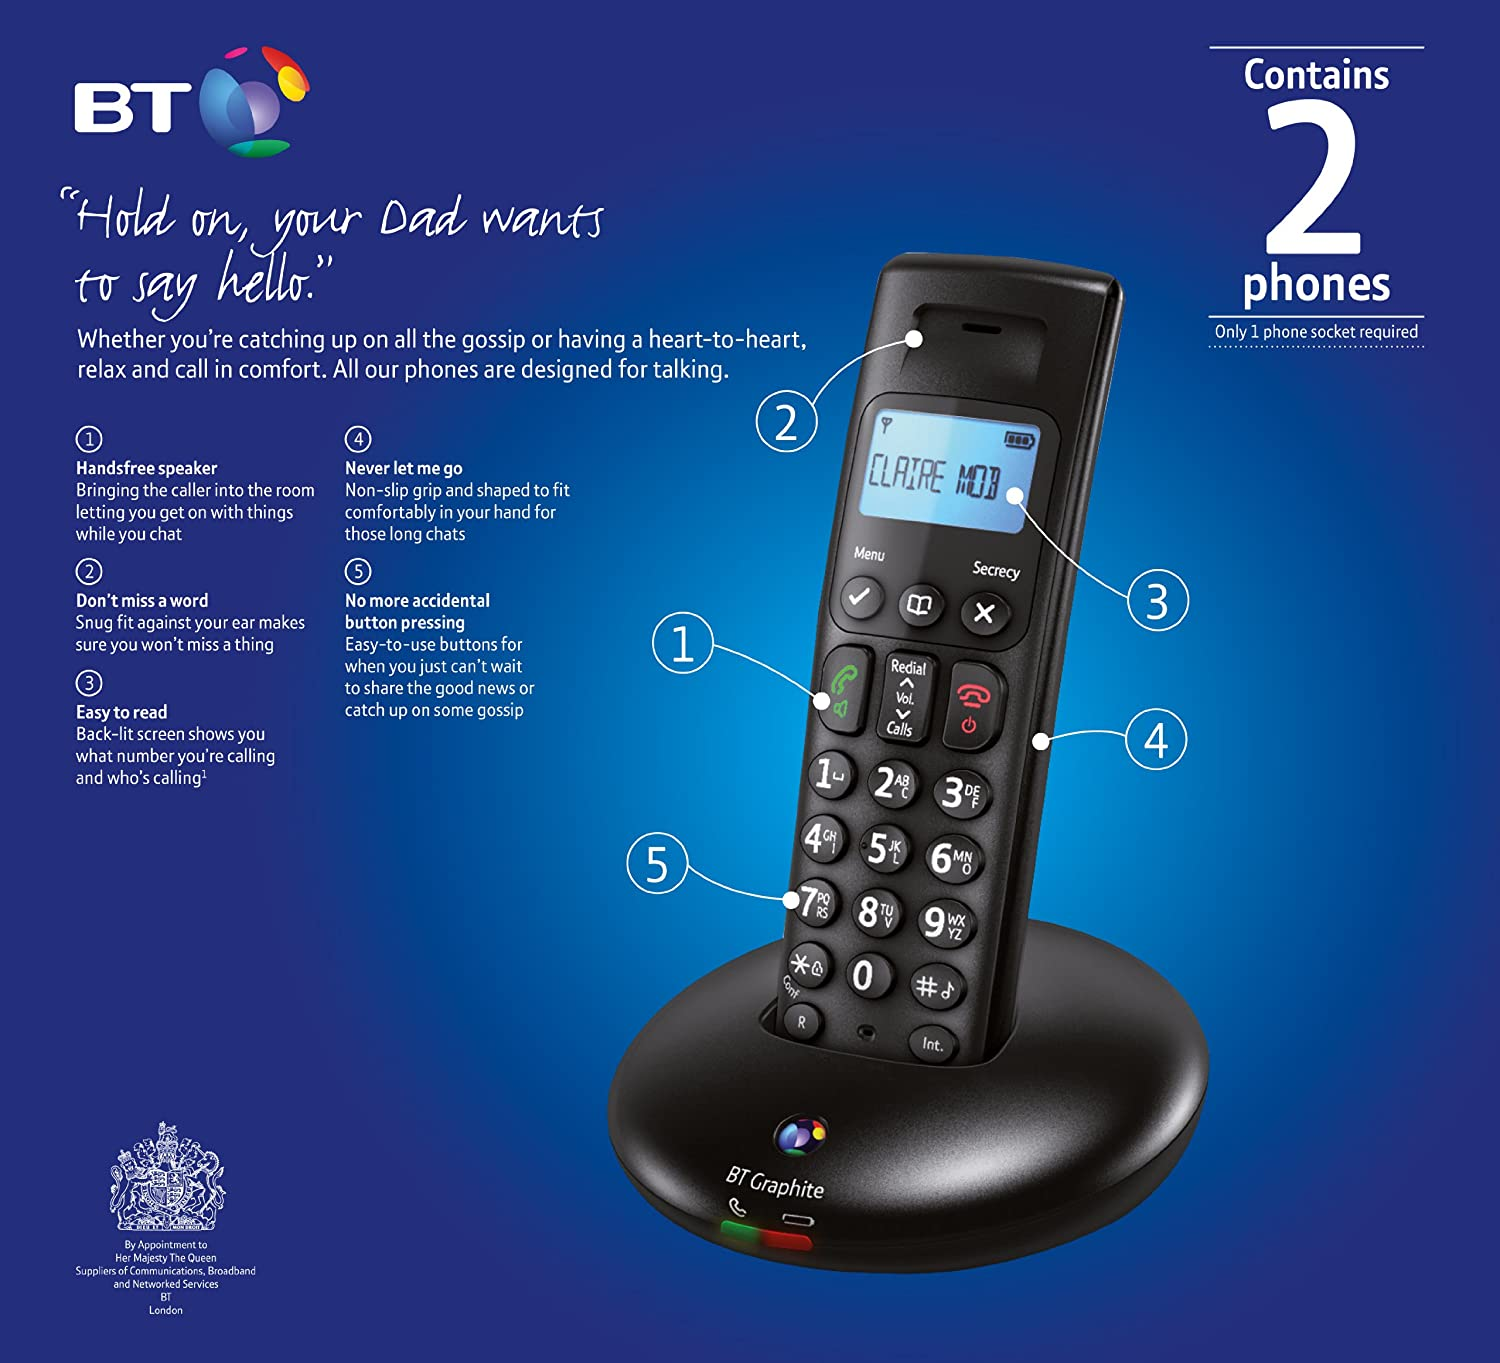 BT Graphite 2100 Twin DECT Digital Cordless Phone: Amazon.co.uk: Electronics